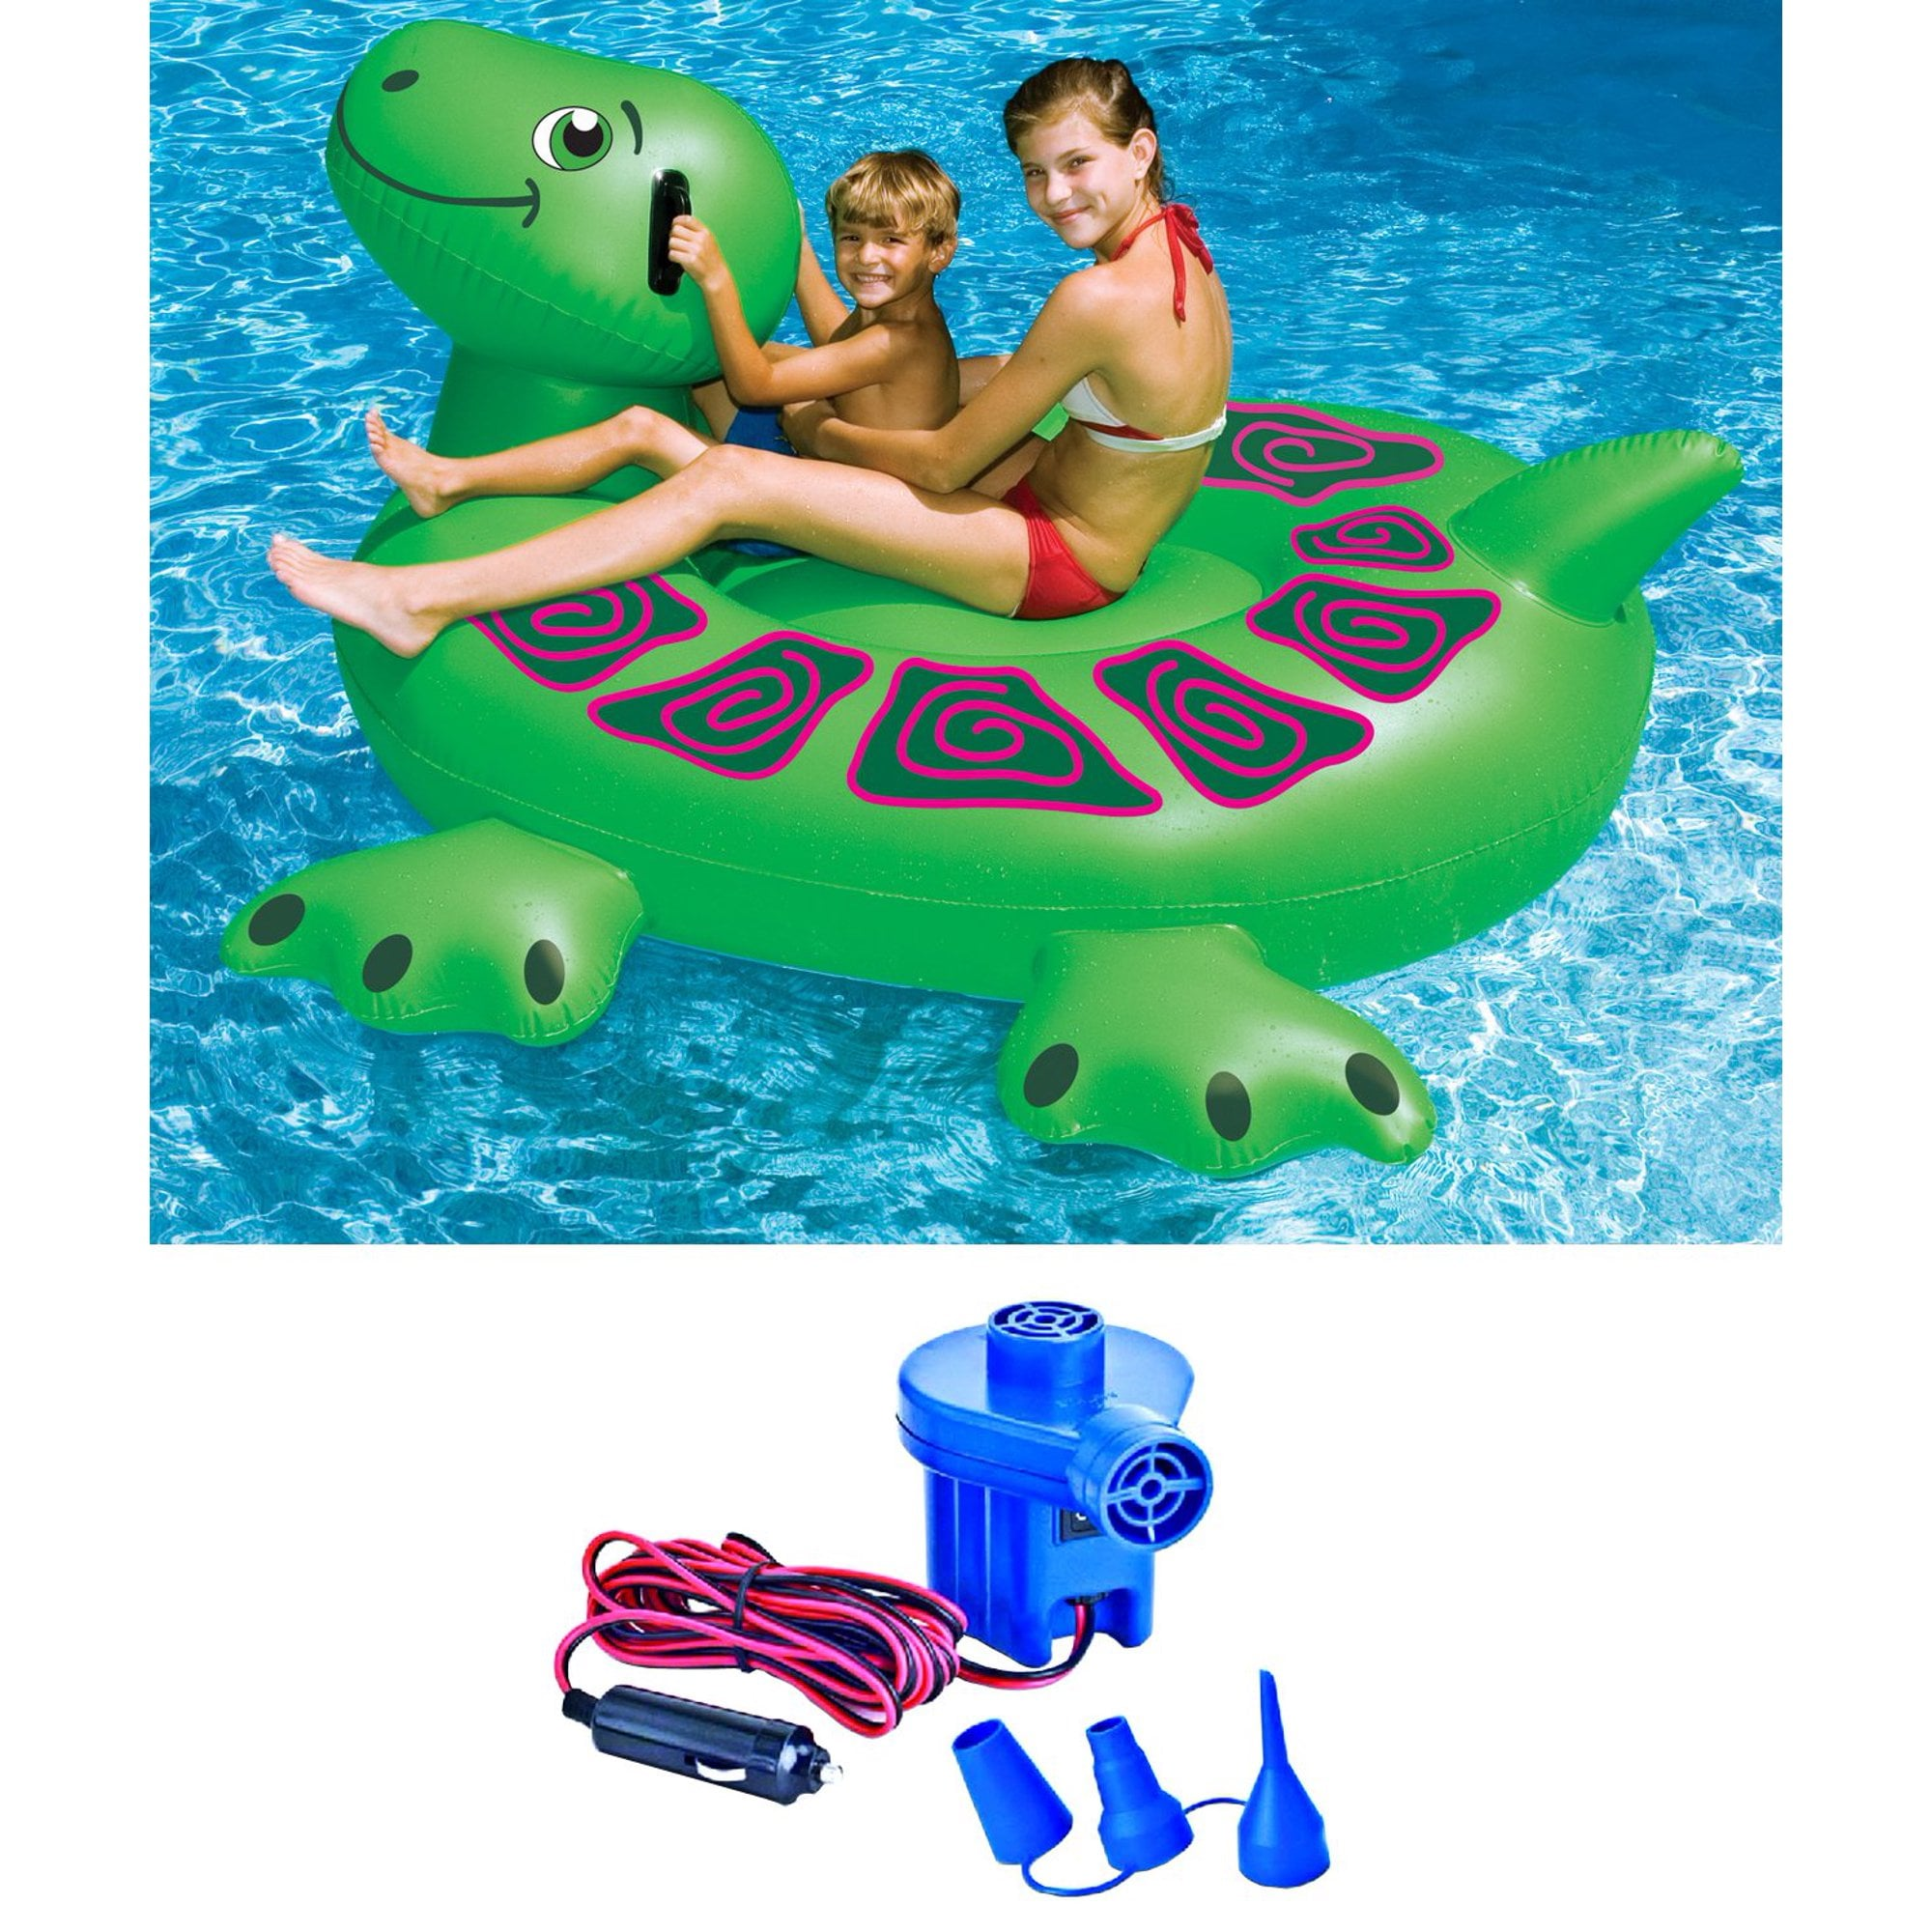 Swimline Pool Kids Inflatable Rideable Turtle Float 7 | 15 ...